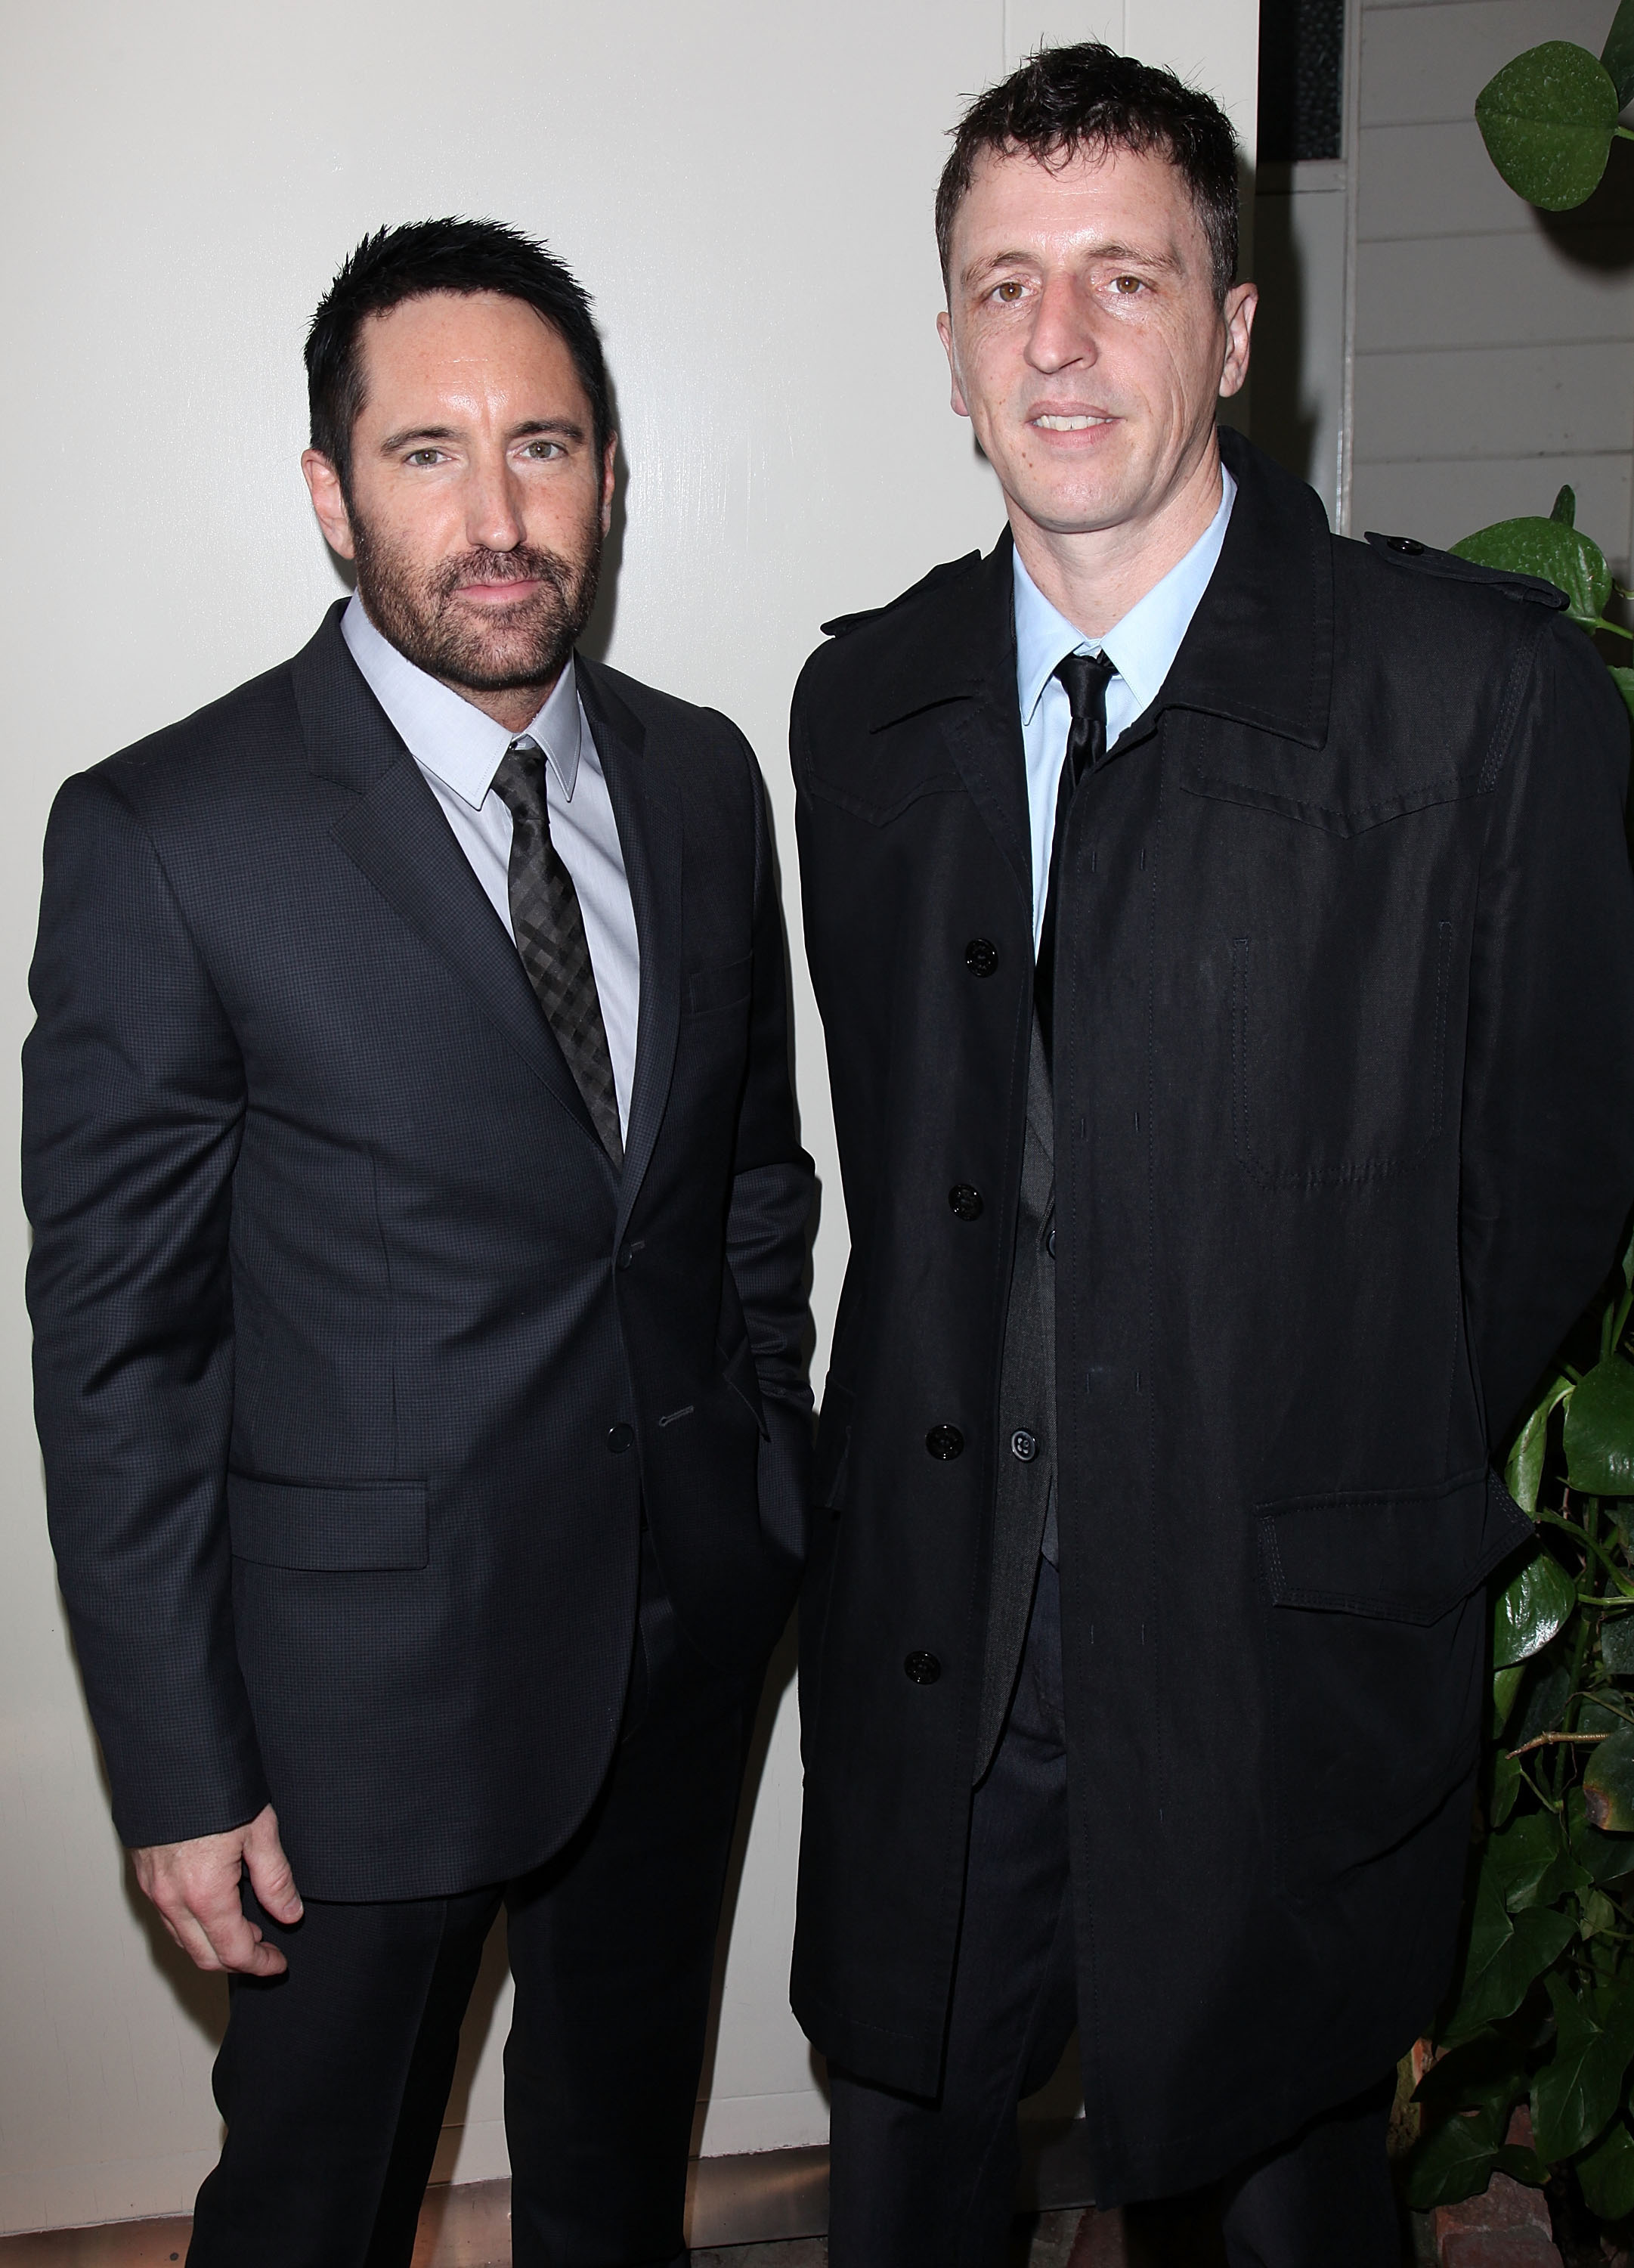 Trent Reznor: David Fincher Wanted 'Massage Parlor' Music for 'Gone Girl'